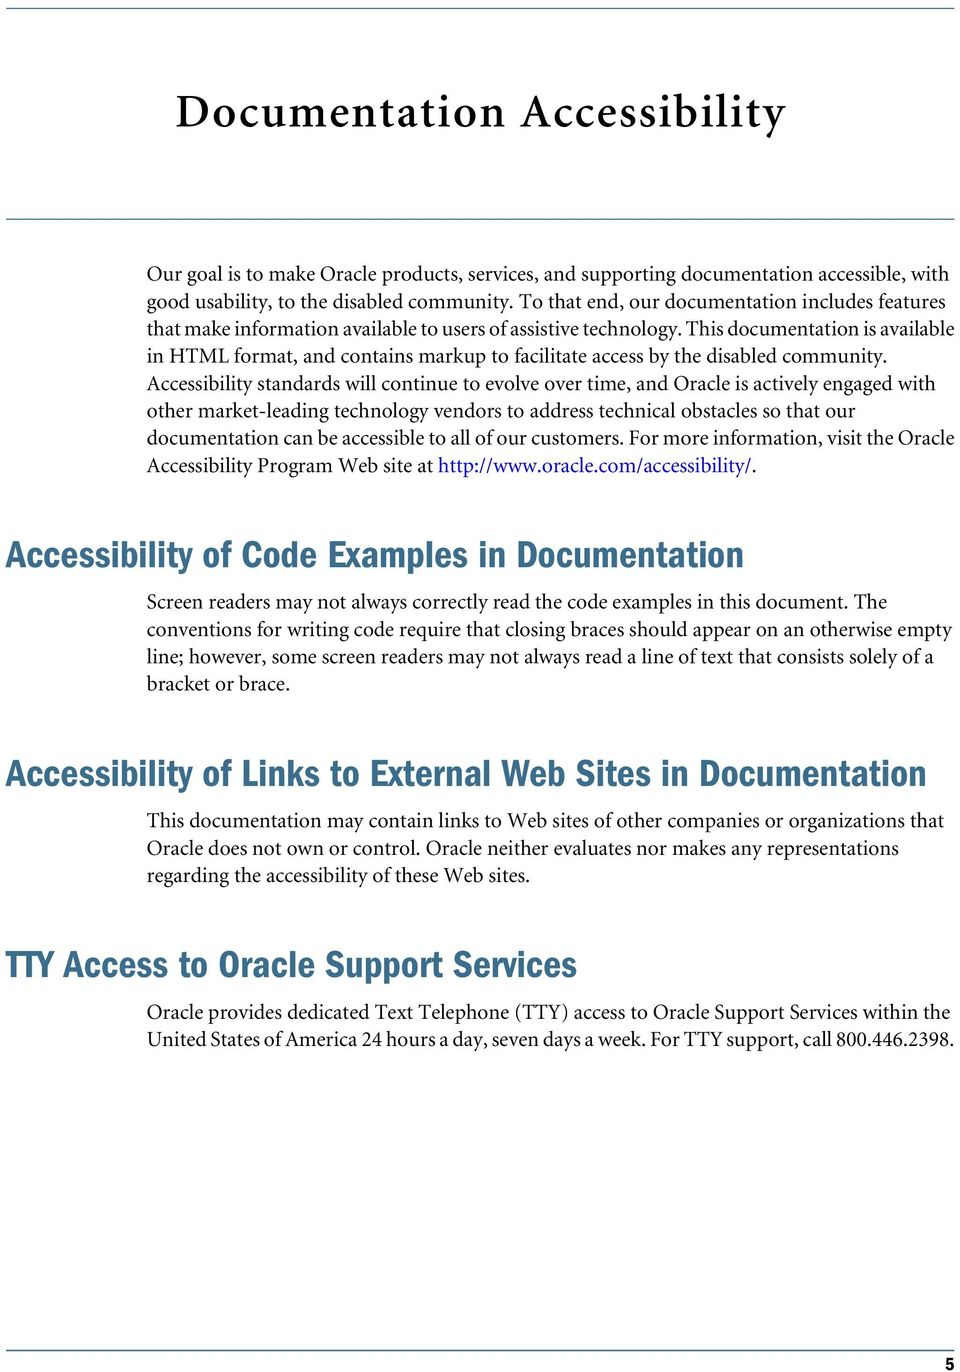 This documentation is avaiabe in HTML format, and contains markup to faciitate access by the disabed community.